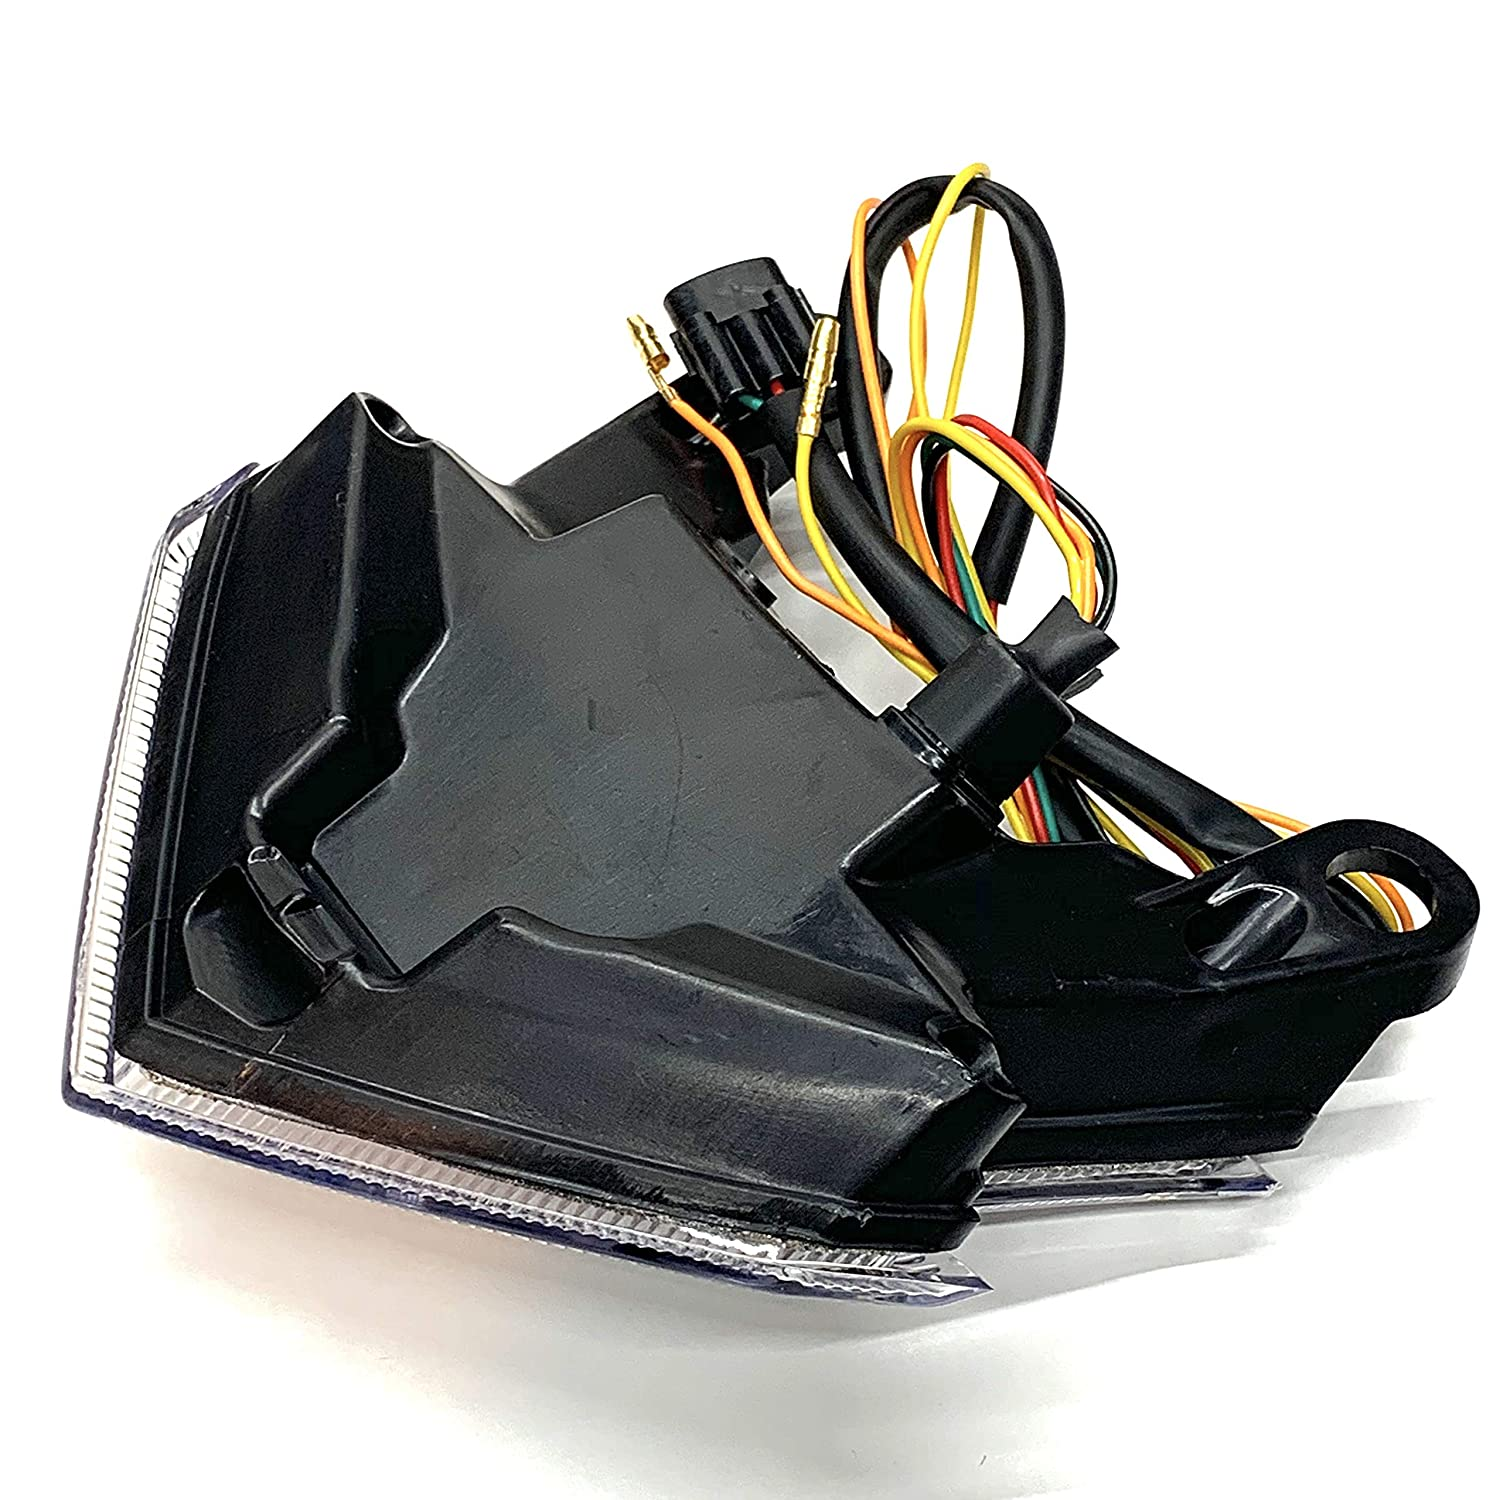 Clear LED Tail Light w//Integrated Turn Signals For Kawasaki Z125 ZX-6R Z800